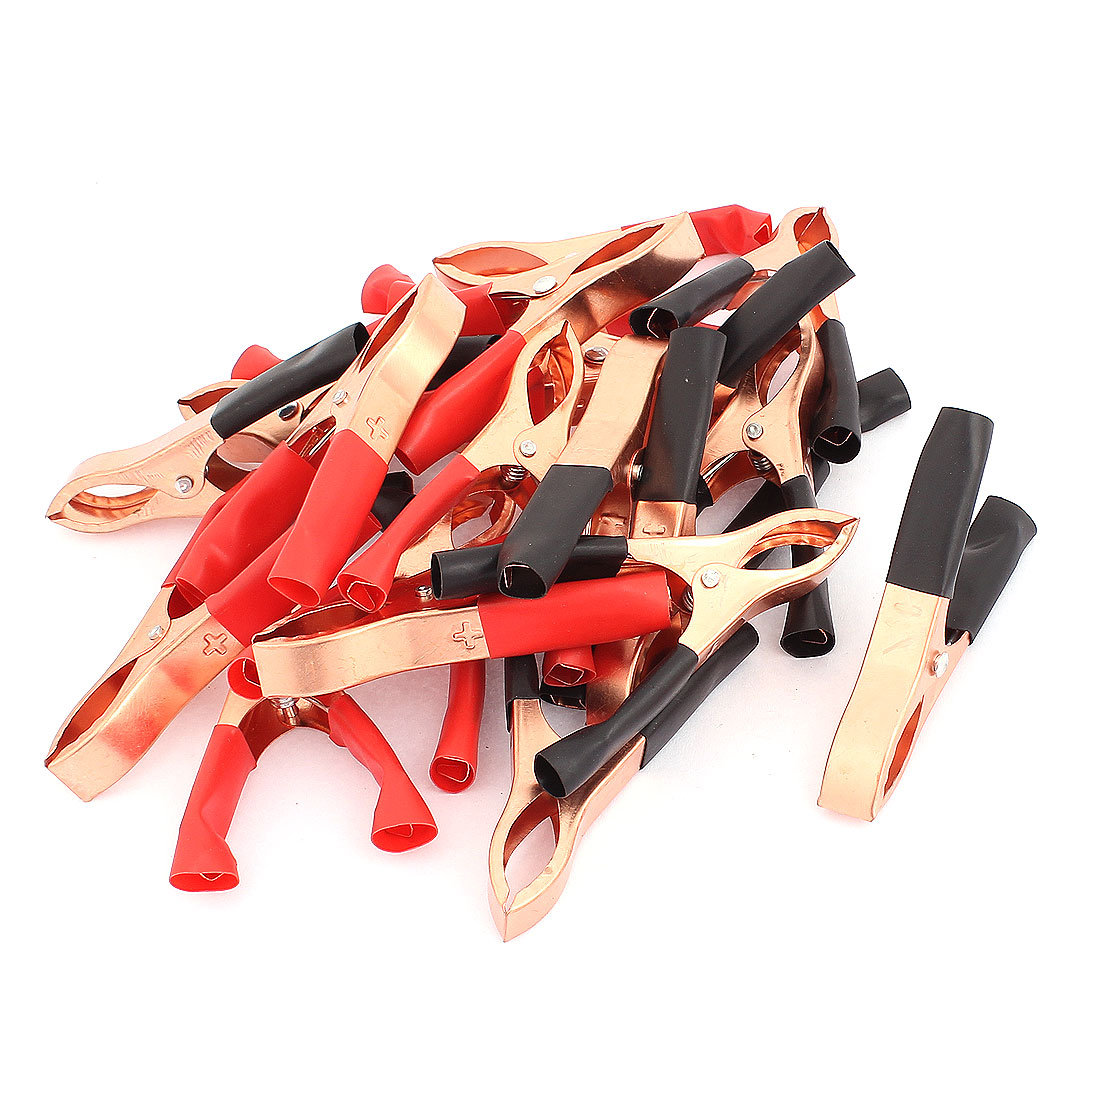 30A Plastic Coated Handle Insulating Alligator Clip Clamp Car Battery Test 20 Pcs Black Red